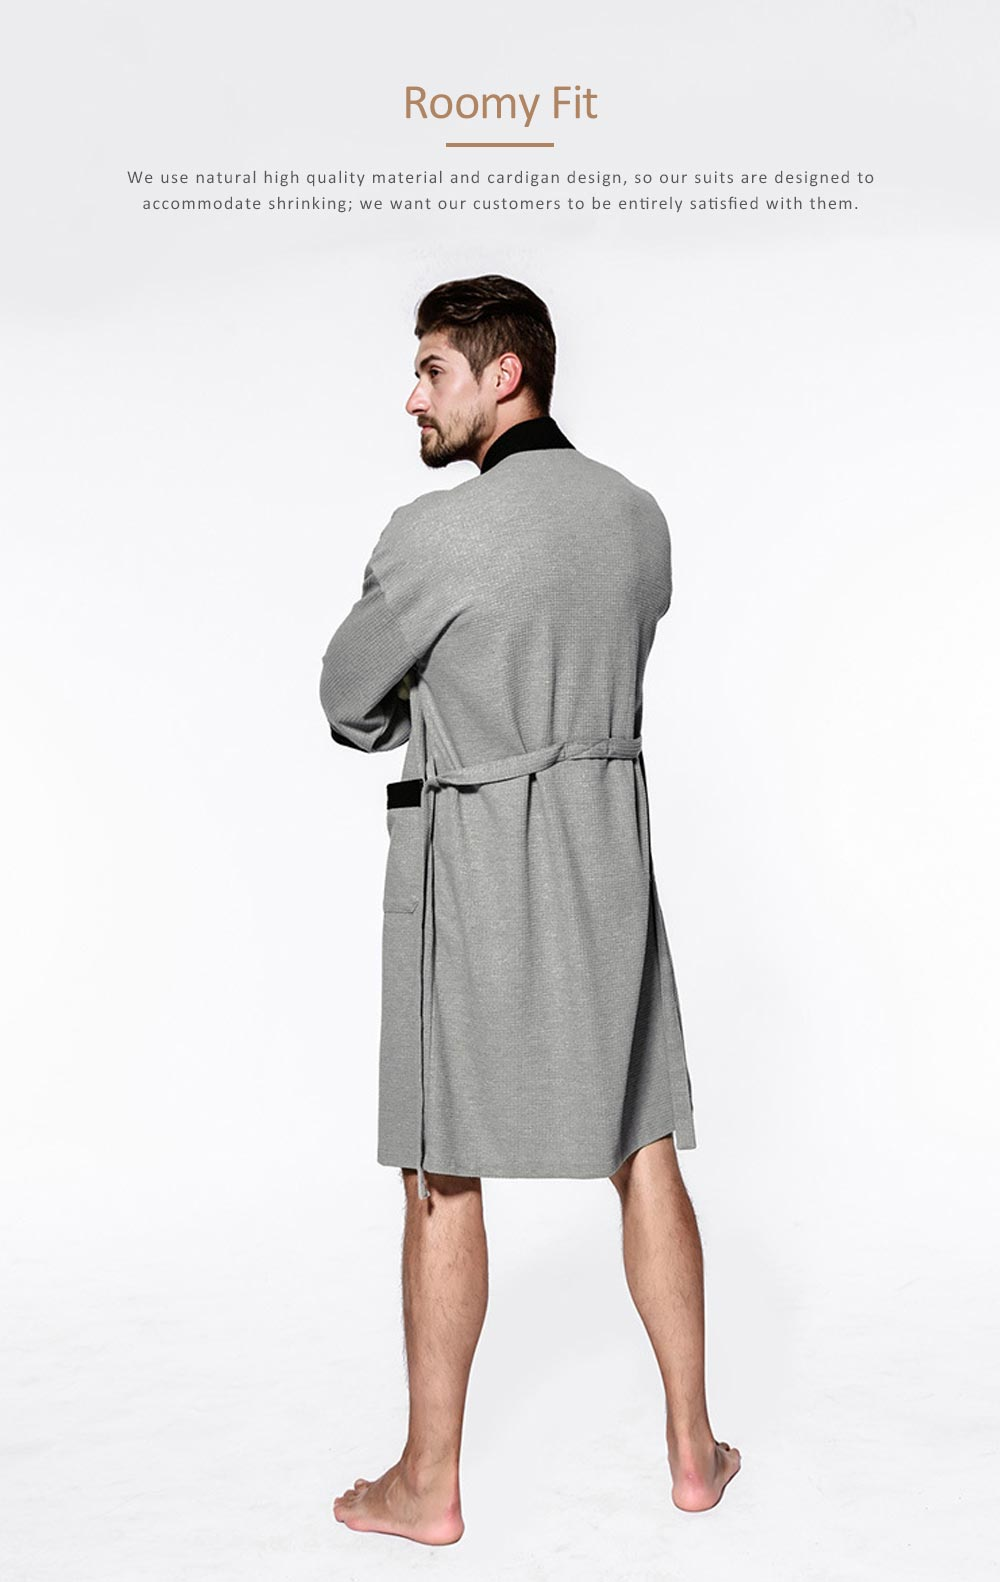 Men All-cotton Skin-friendly Night Gown, Bathrobe, Sweat Sauna Towel for Beauty Salon and Spa Hotel 4